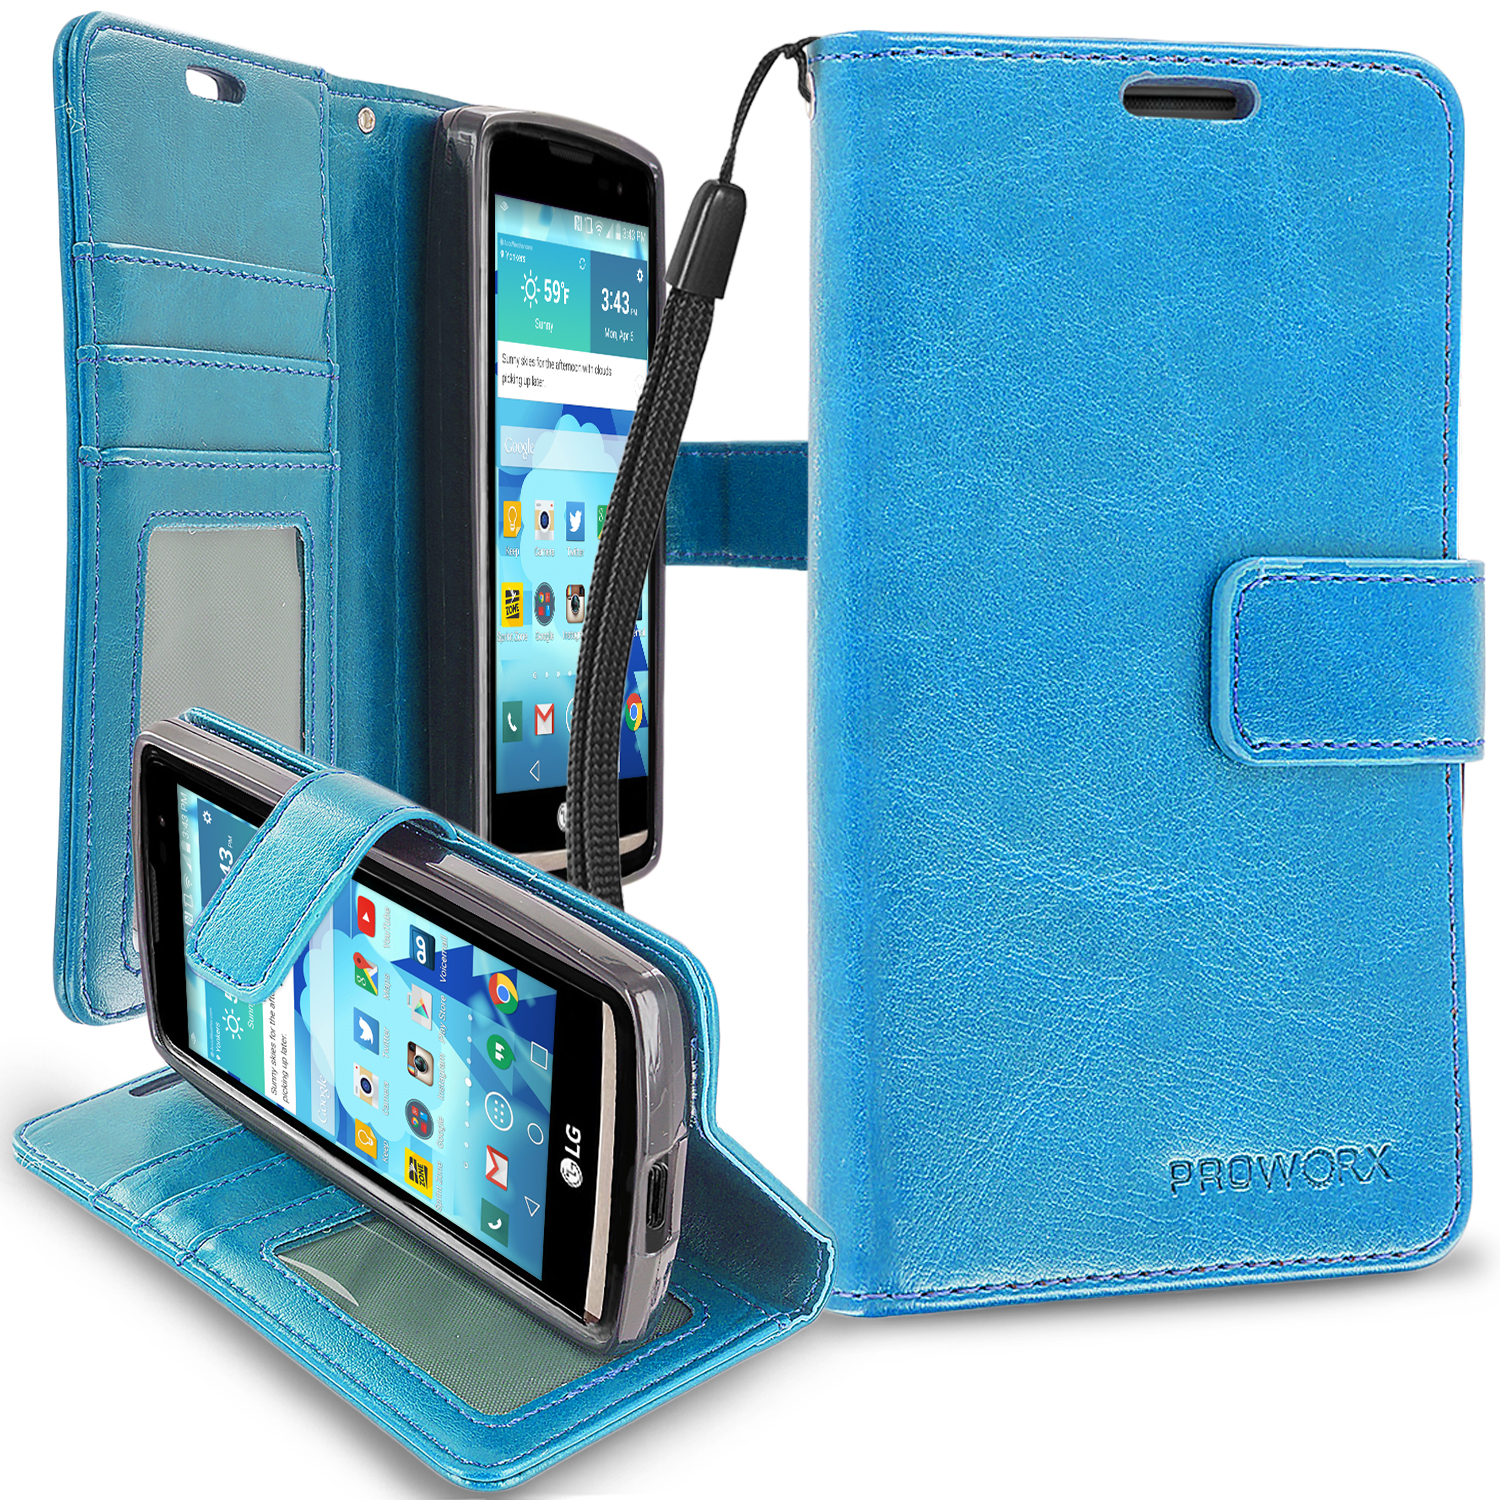 LG Tribute 2 Leon Power Destiny Baby Blue ProWorx Wallet Case Luxury PU Leather Case Cover With Card Slots & Stand